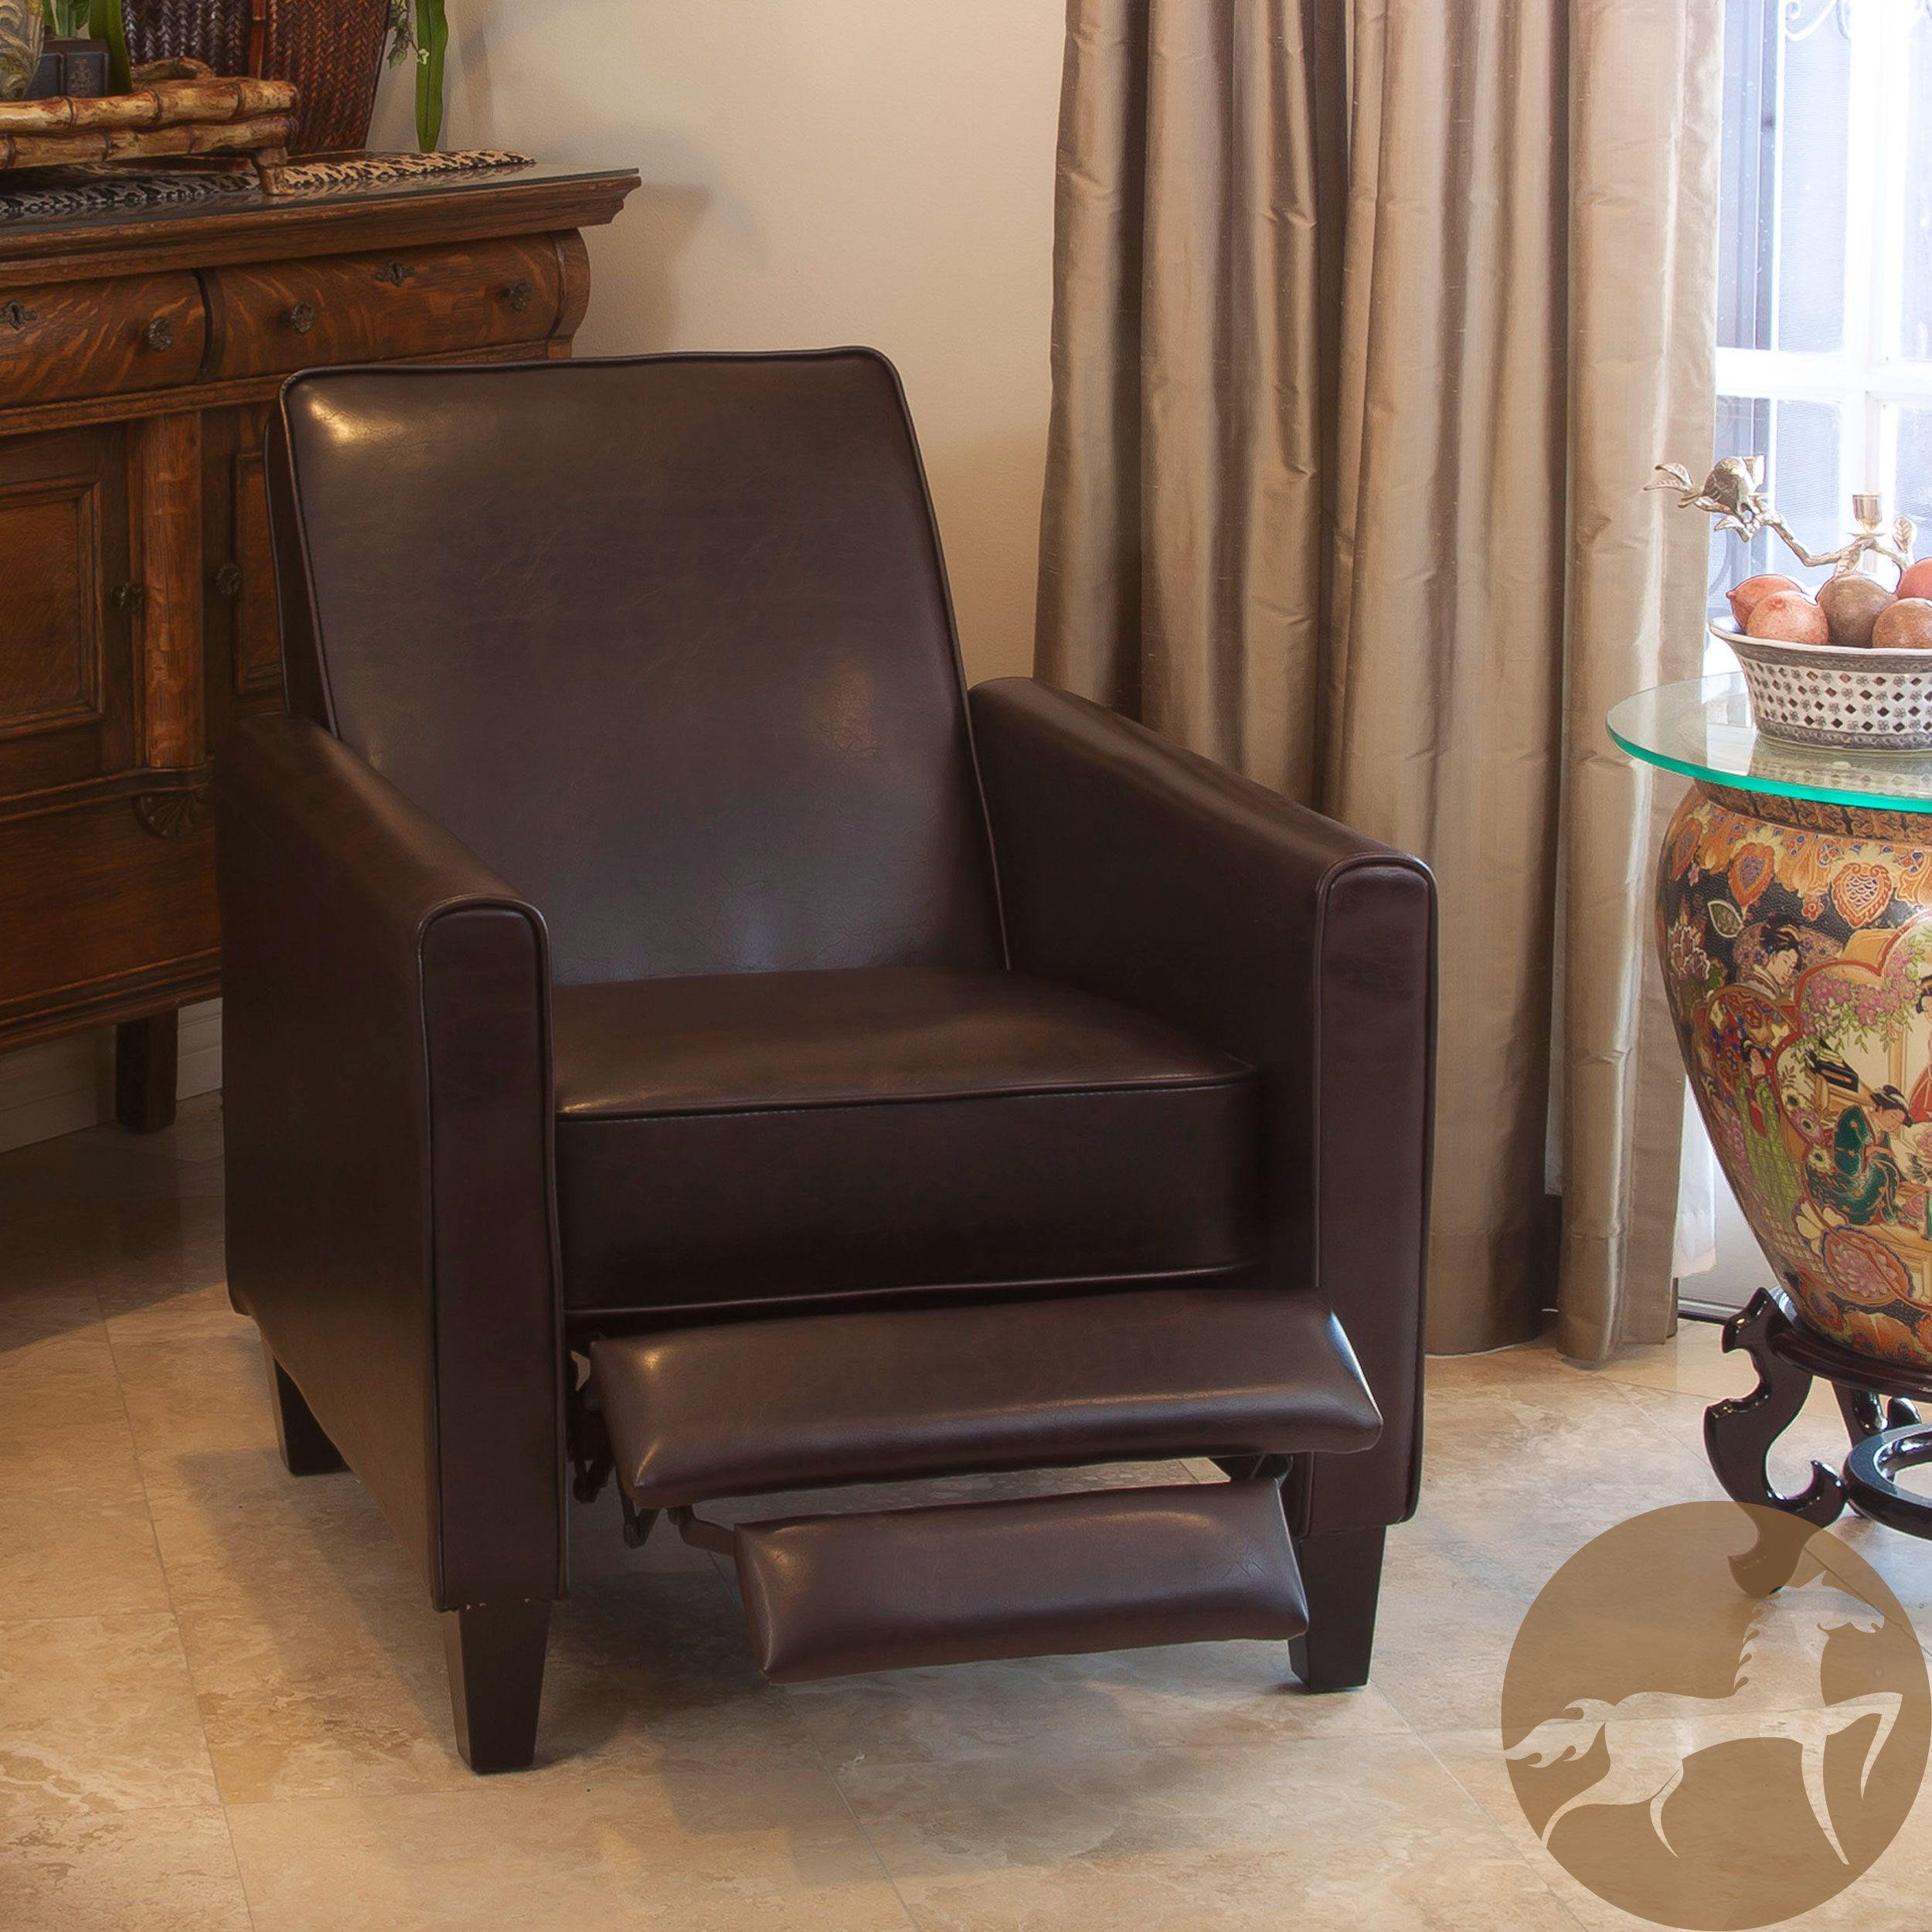 Club Chairs For Small Spaces Baby Bouncing Chair Relax In Style With This Recliner Featuring A